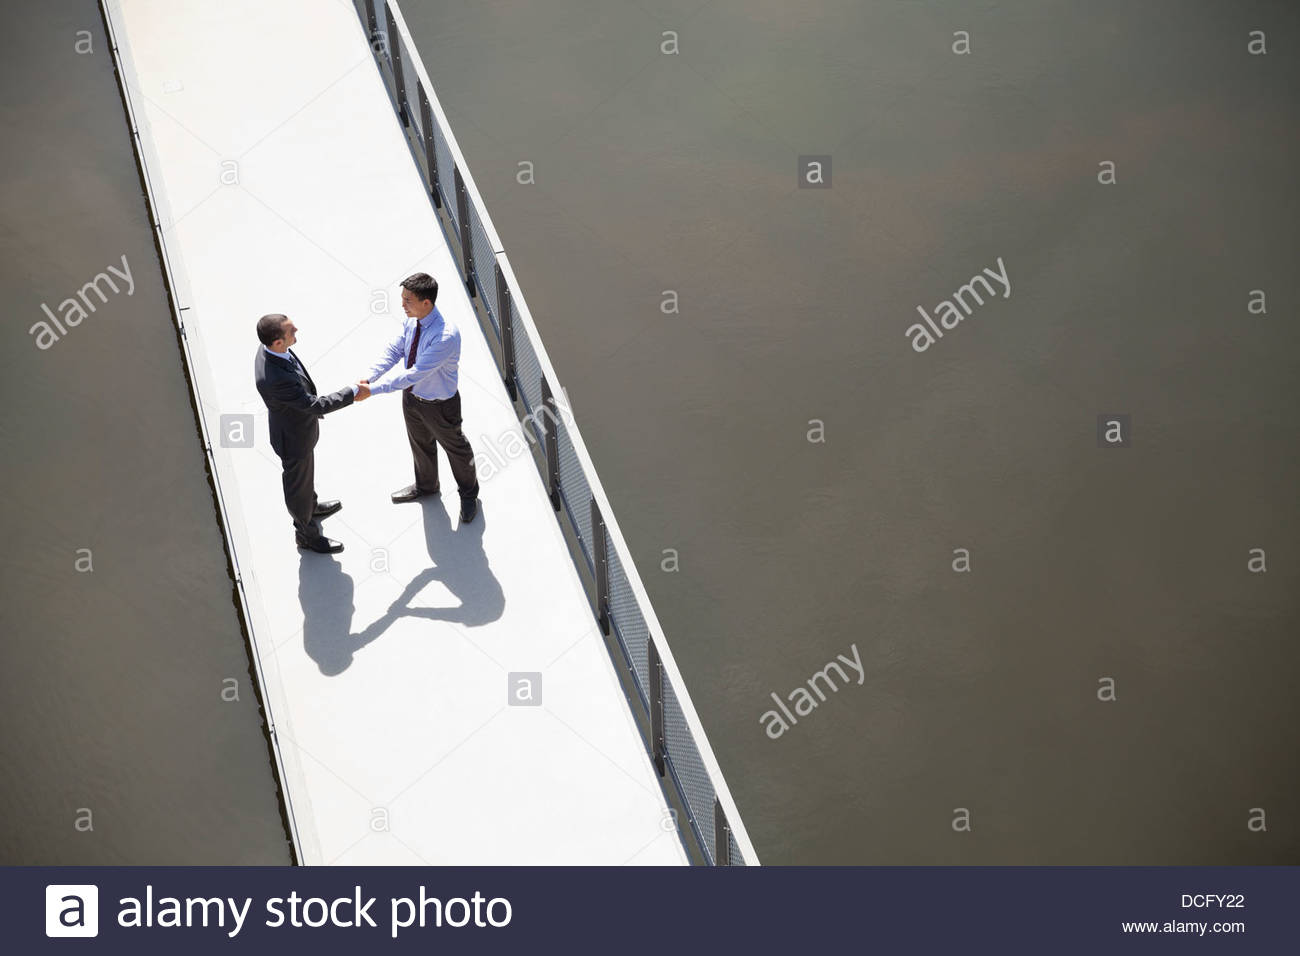 High angle view of businessmen shaking hands Photo Stock